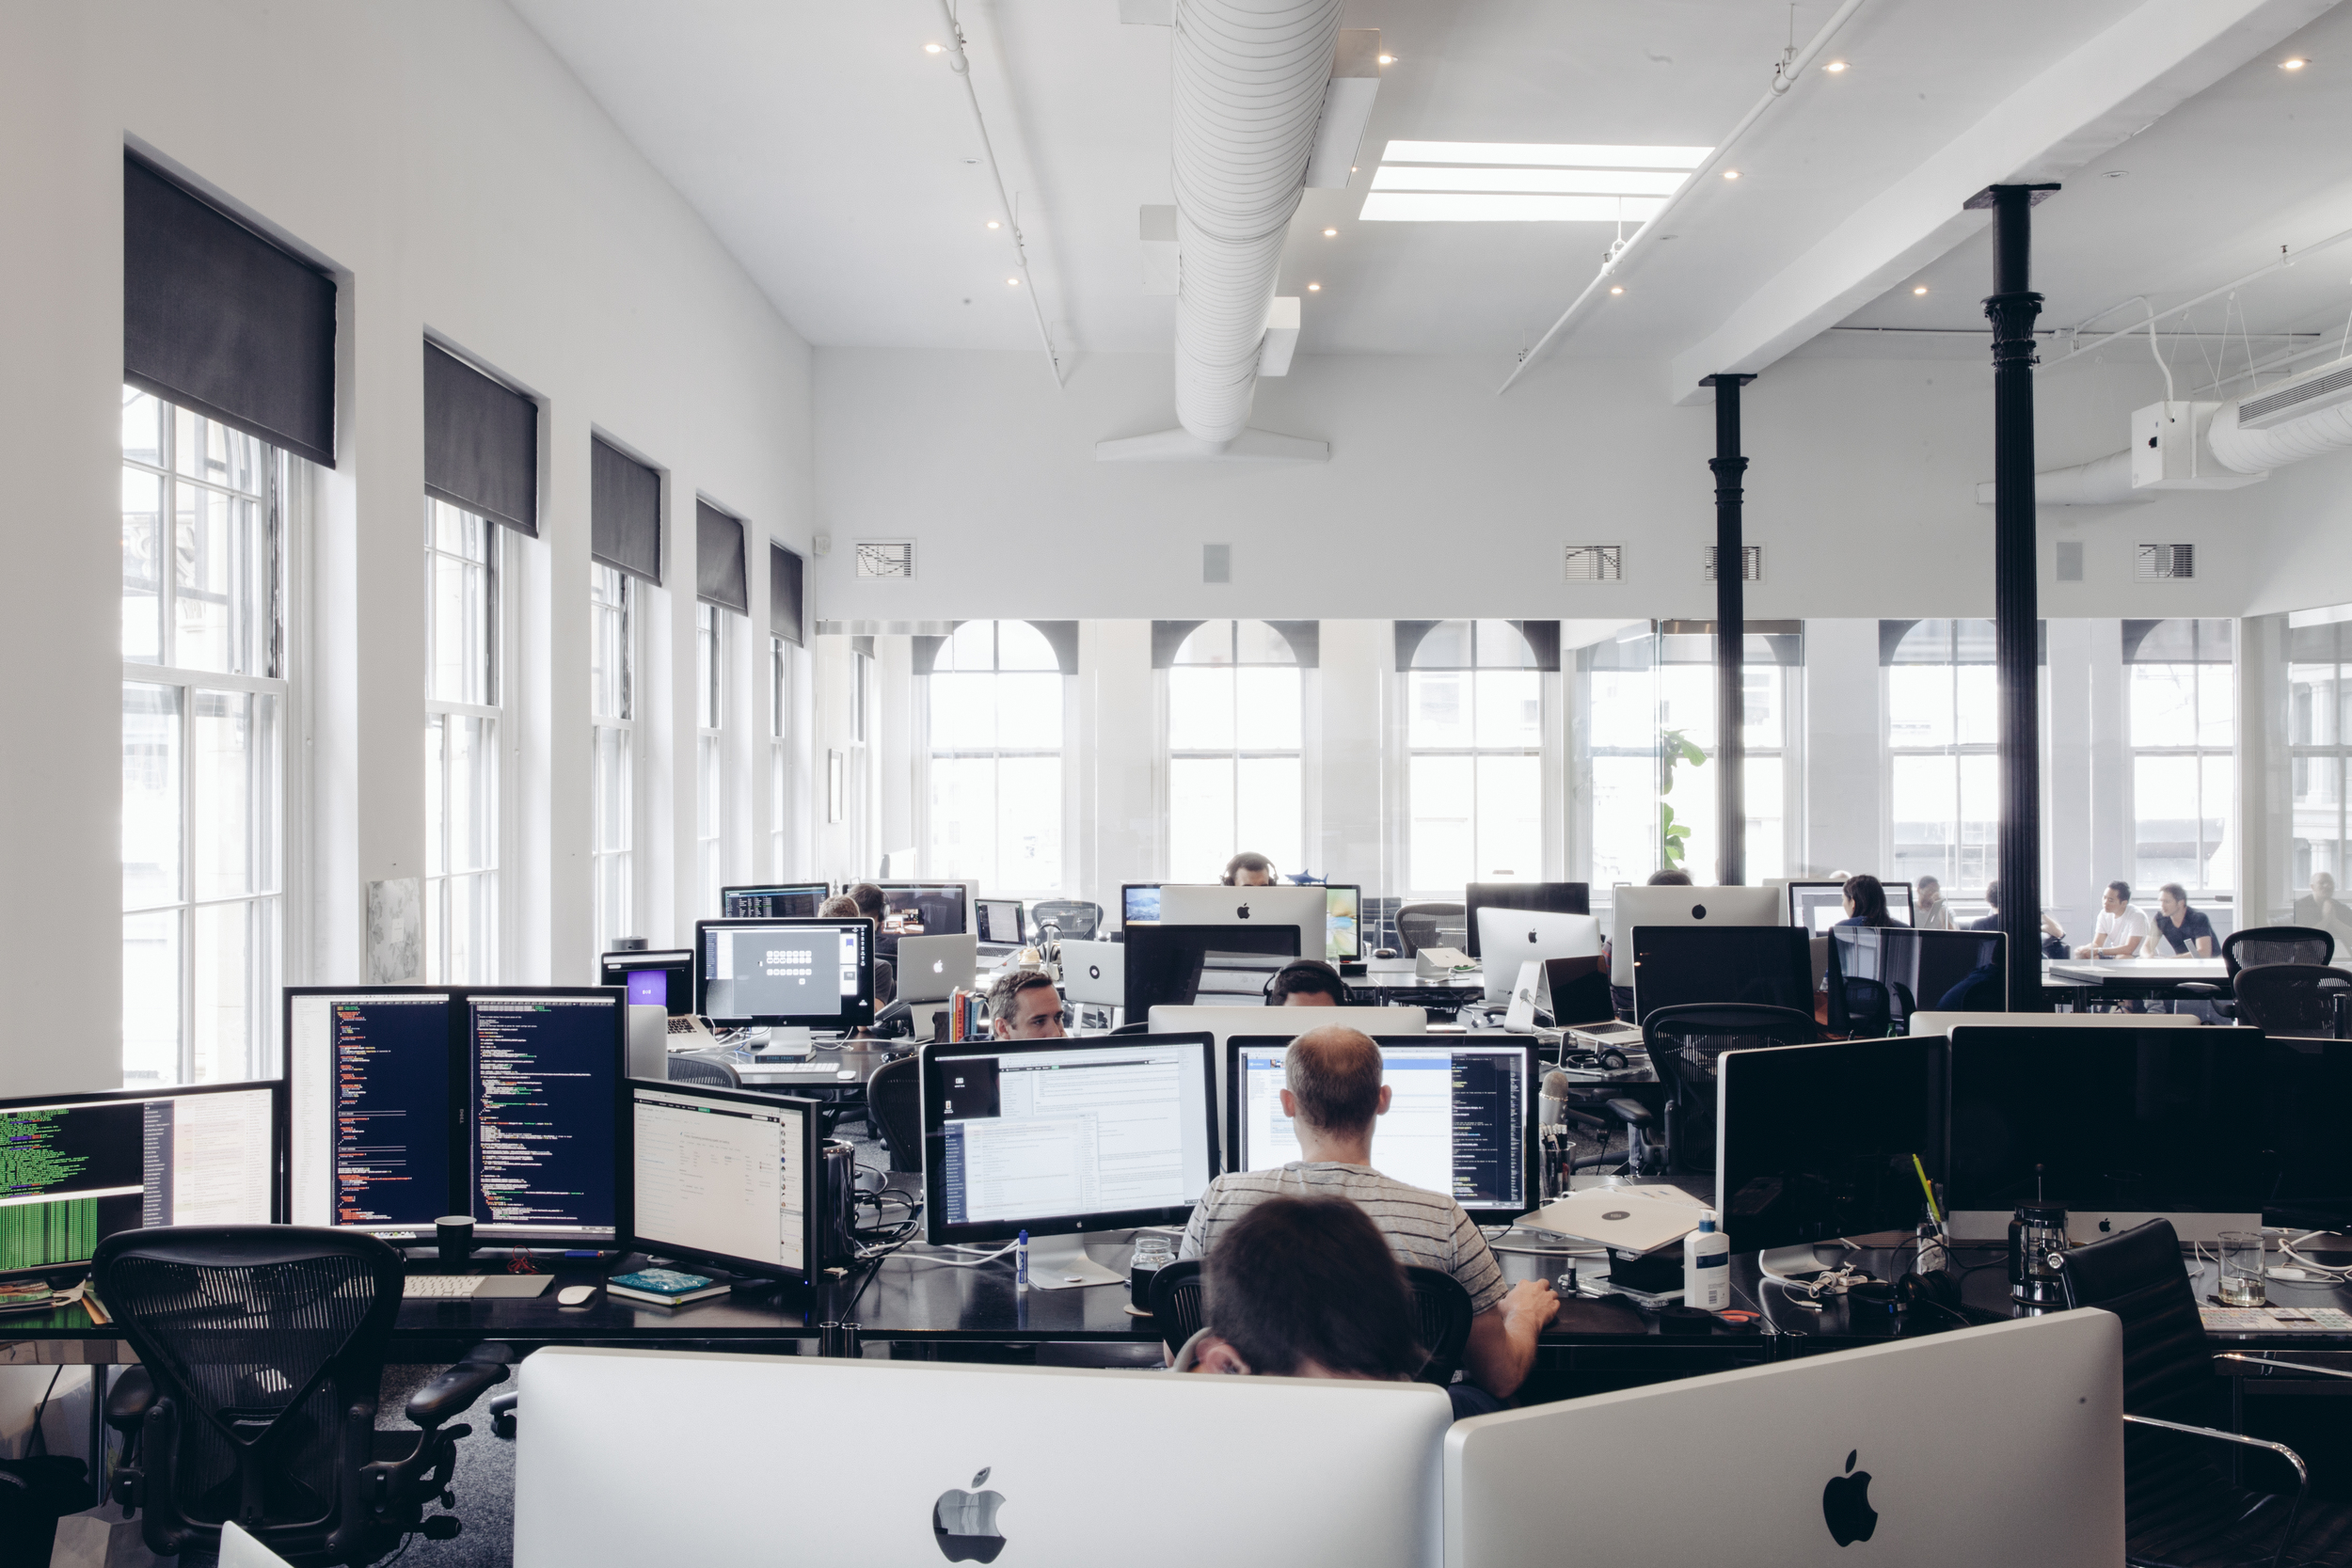 Squarespace headsquarters in New York City